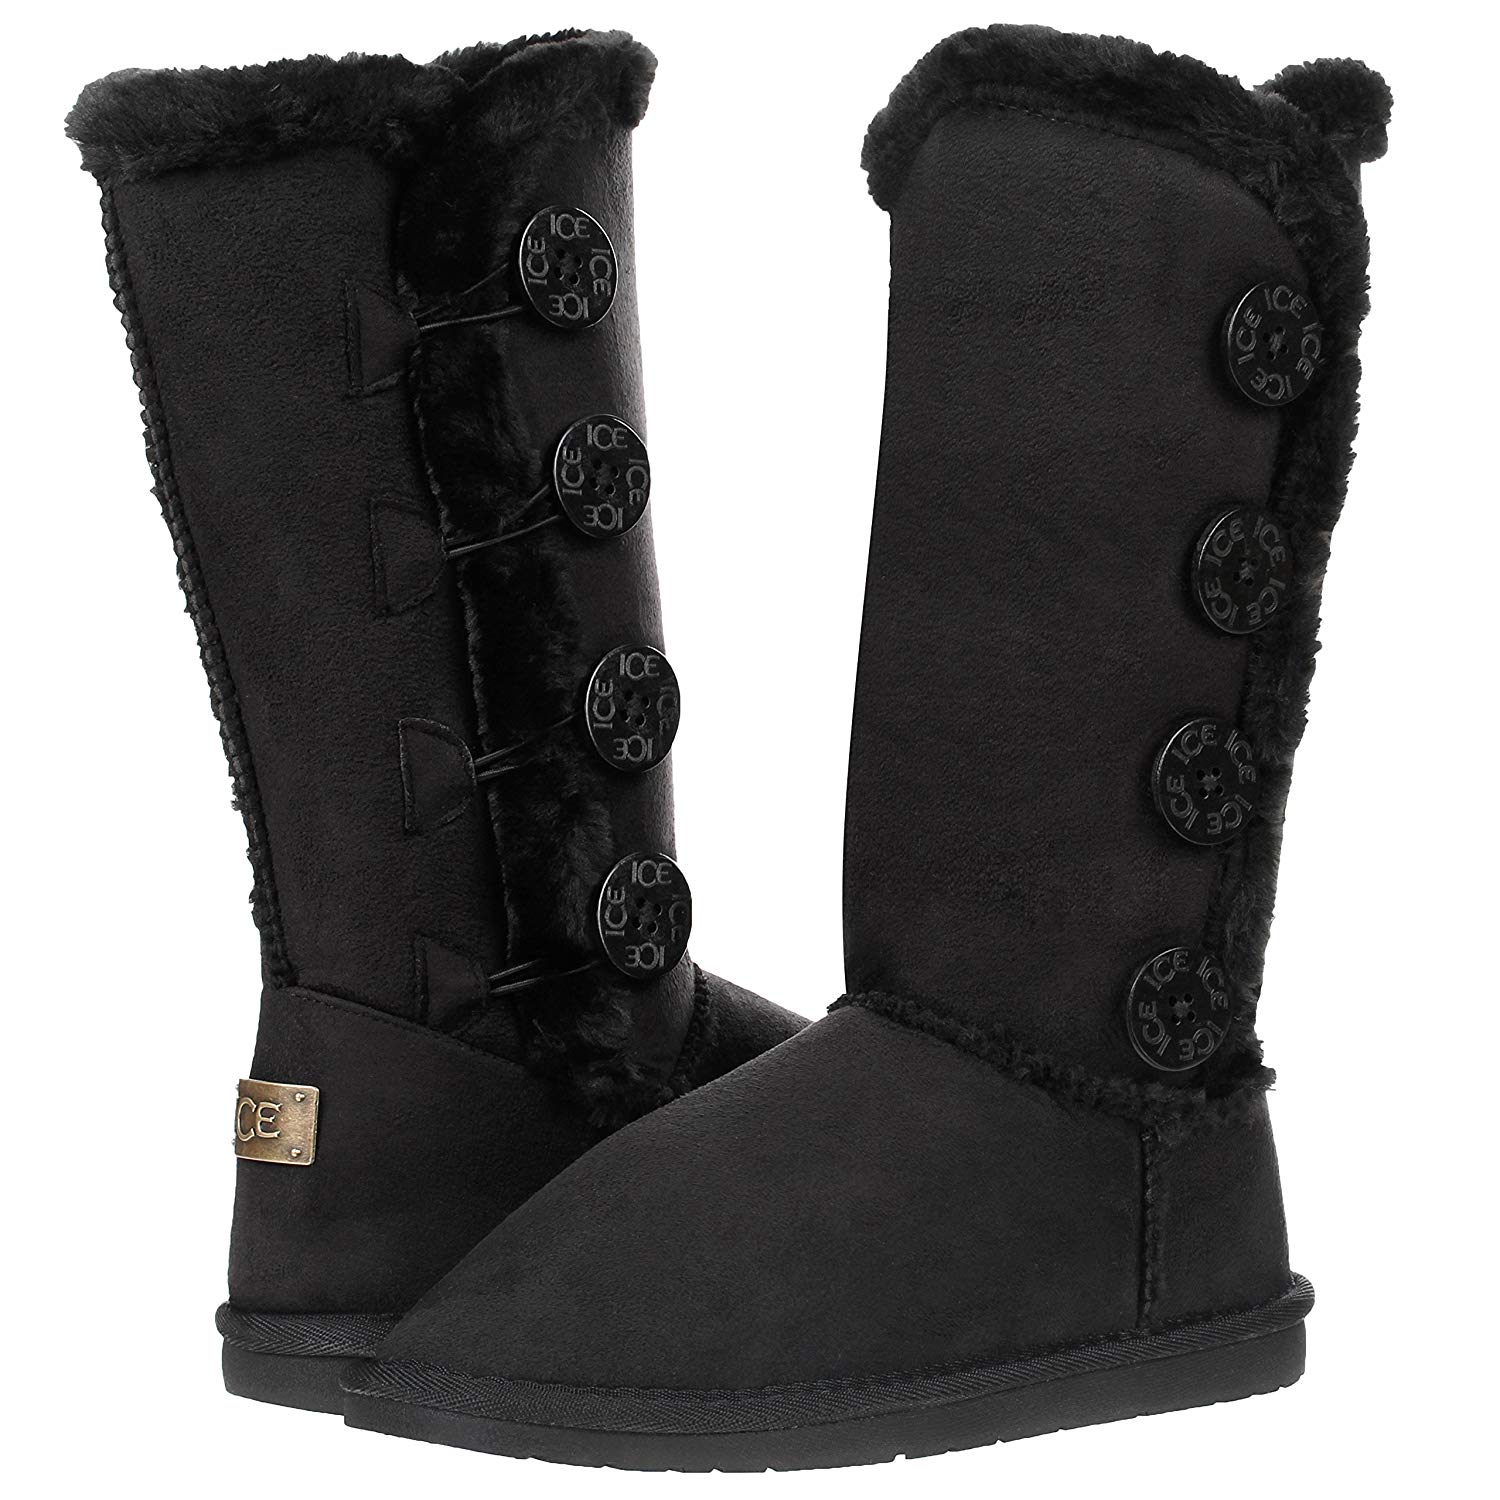 c3826db0188f3 Get Quotations · Solemate Women s Four Button Faux Fur Lined Shearling Mid  Calf Winter Boots